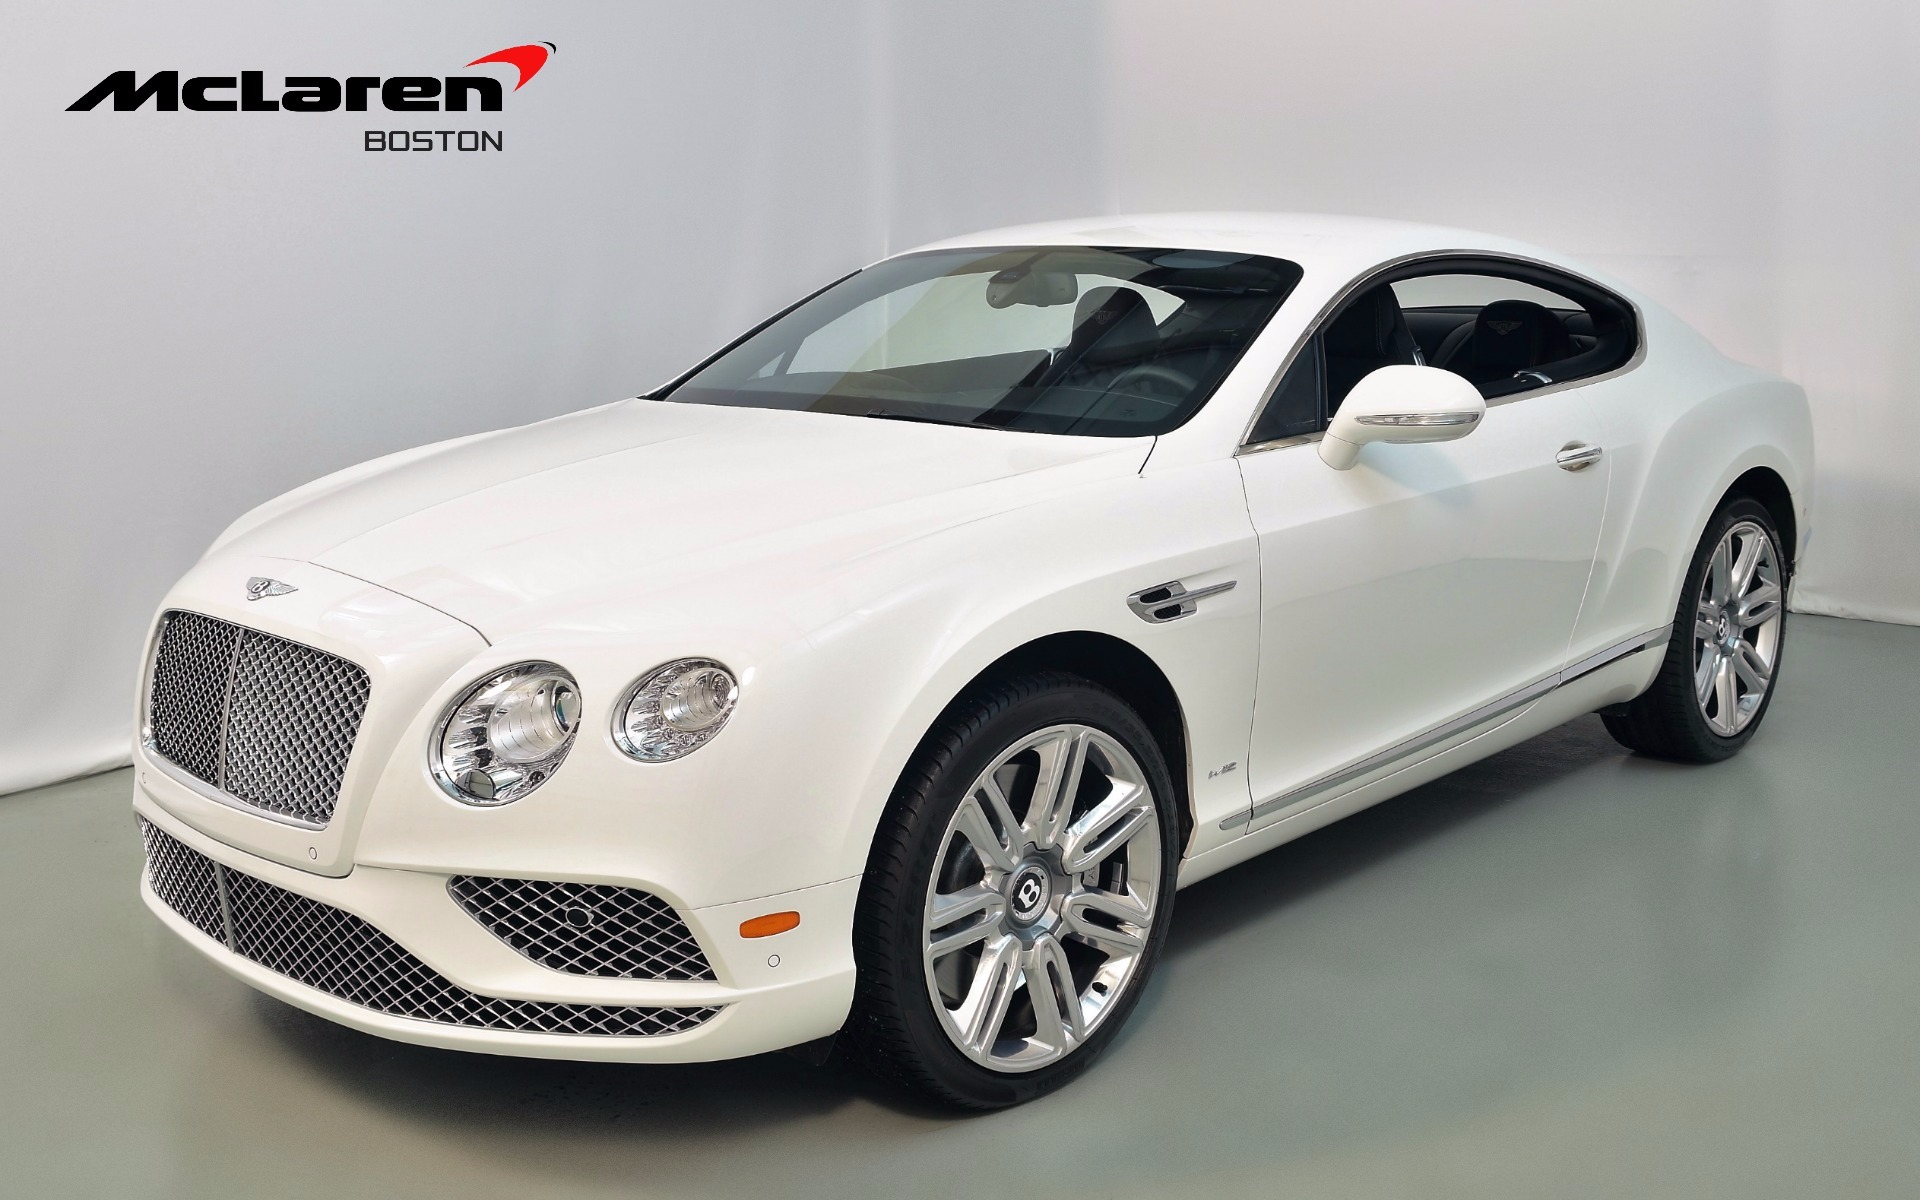 2016 bentley continental gt w12 for sale in norwell ma 054024 mclaren boston. Black Bedroom Furniture Sets. Home Design Ideas